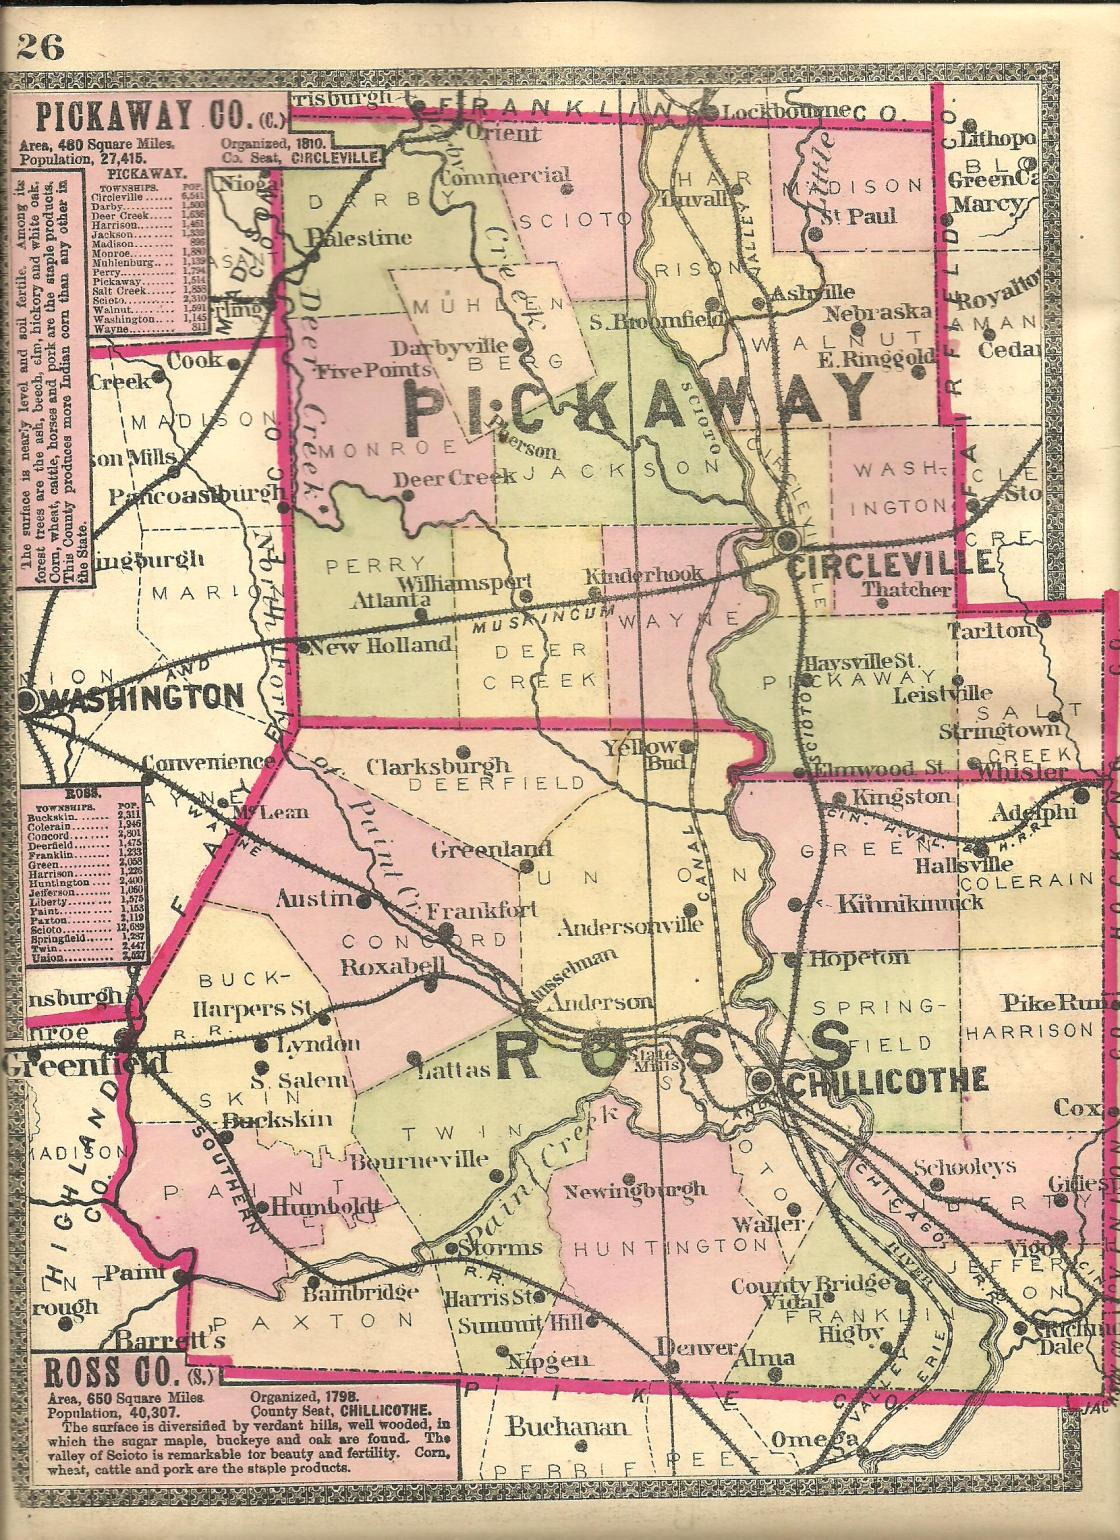 Ghost Town Colorado Map.Ross County Ohio Ghost Town Exploration Co